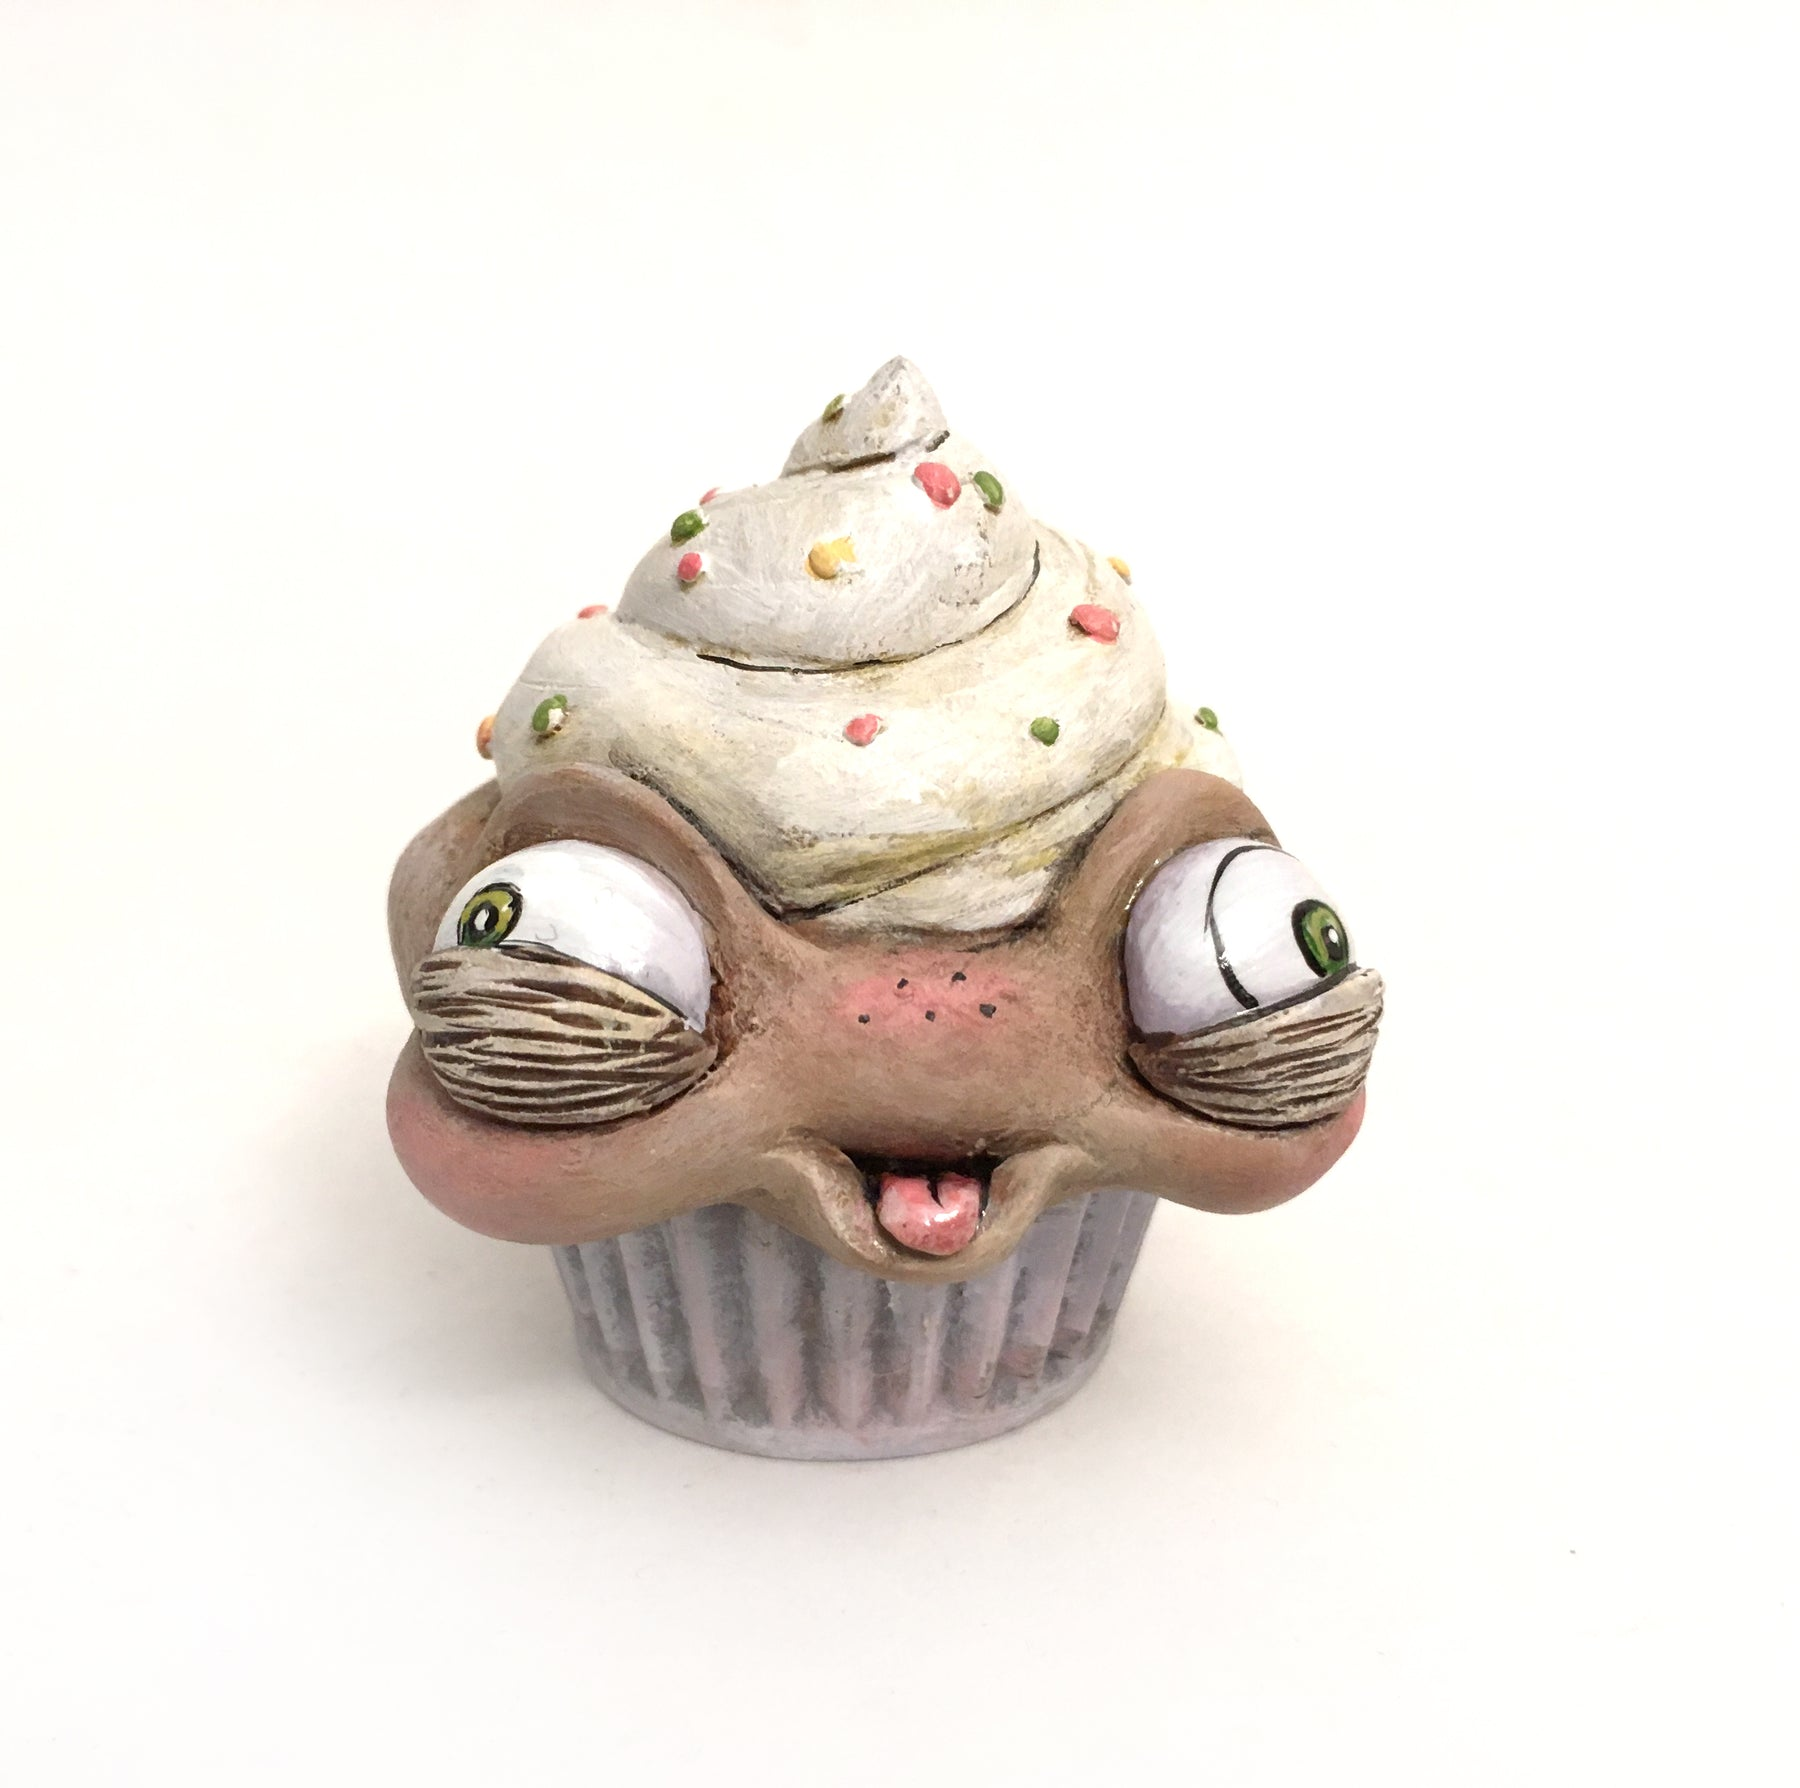 Cuppy the Cupcake by One Eyed Girl